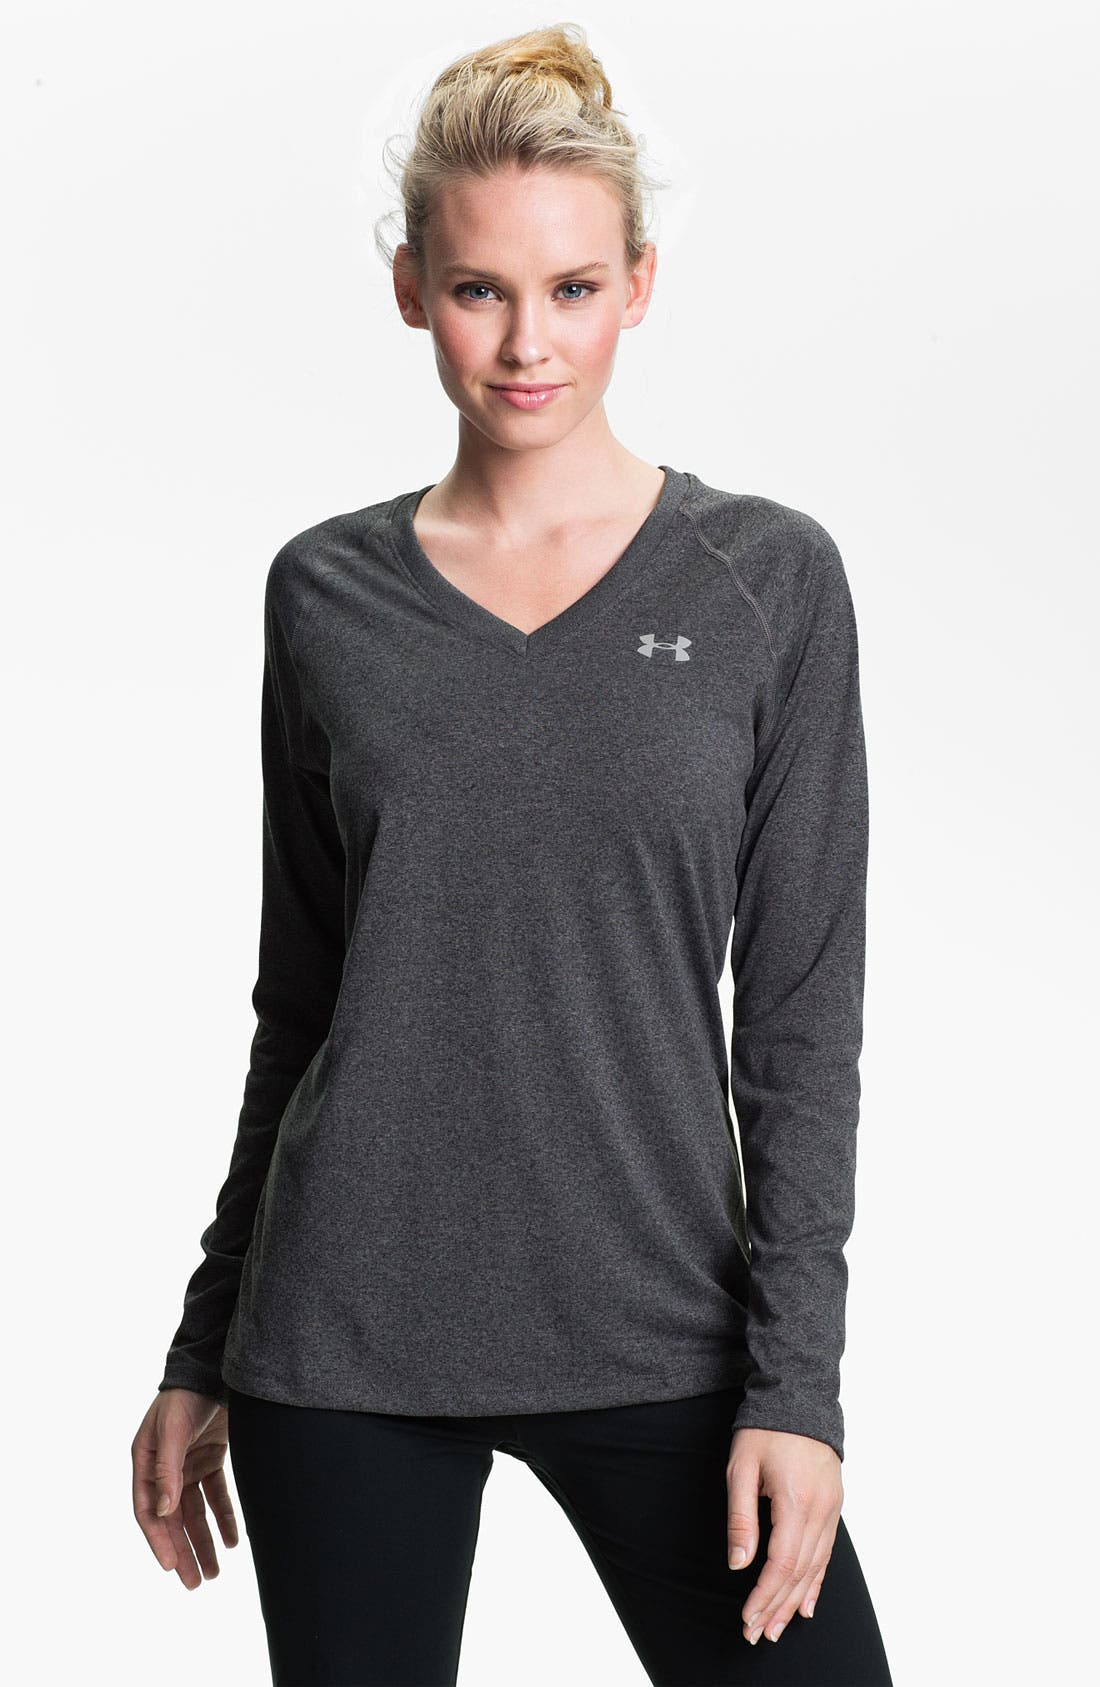 Alternate Image 1 Selected - Under Armour 'Tech' Long Sleeve Tee